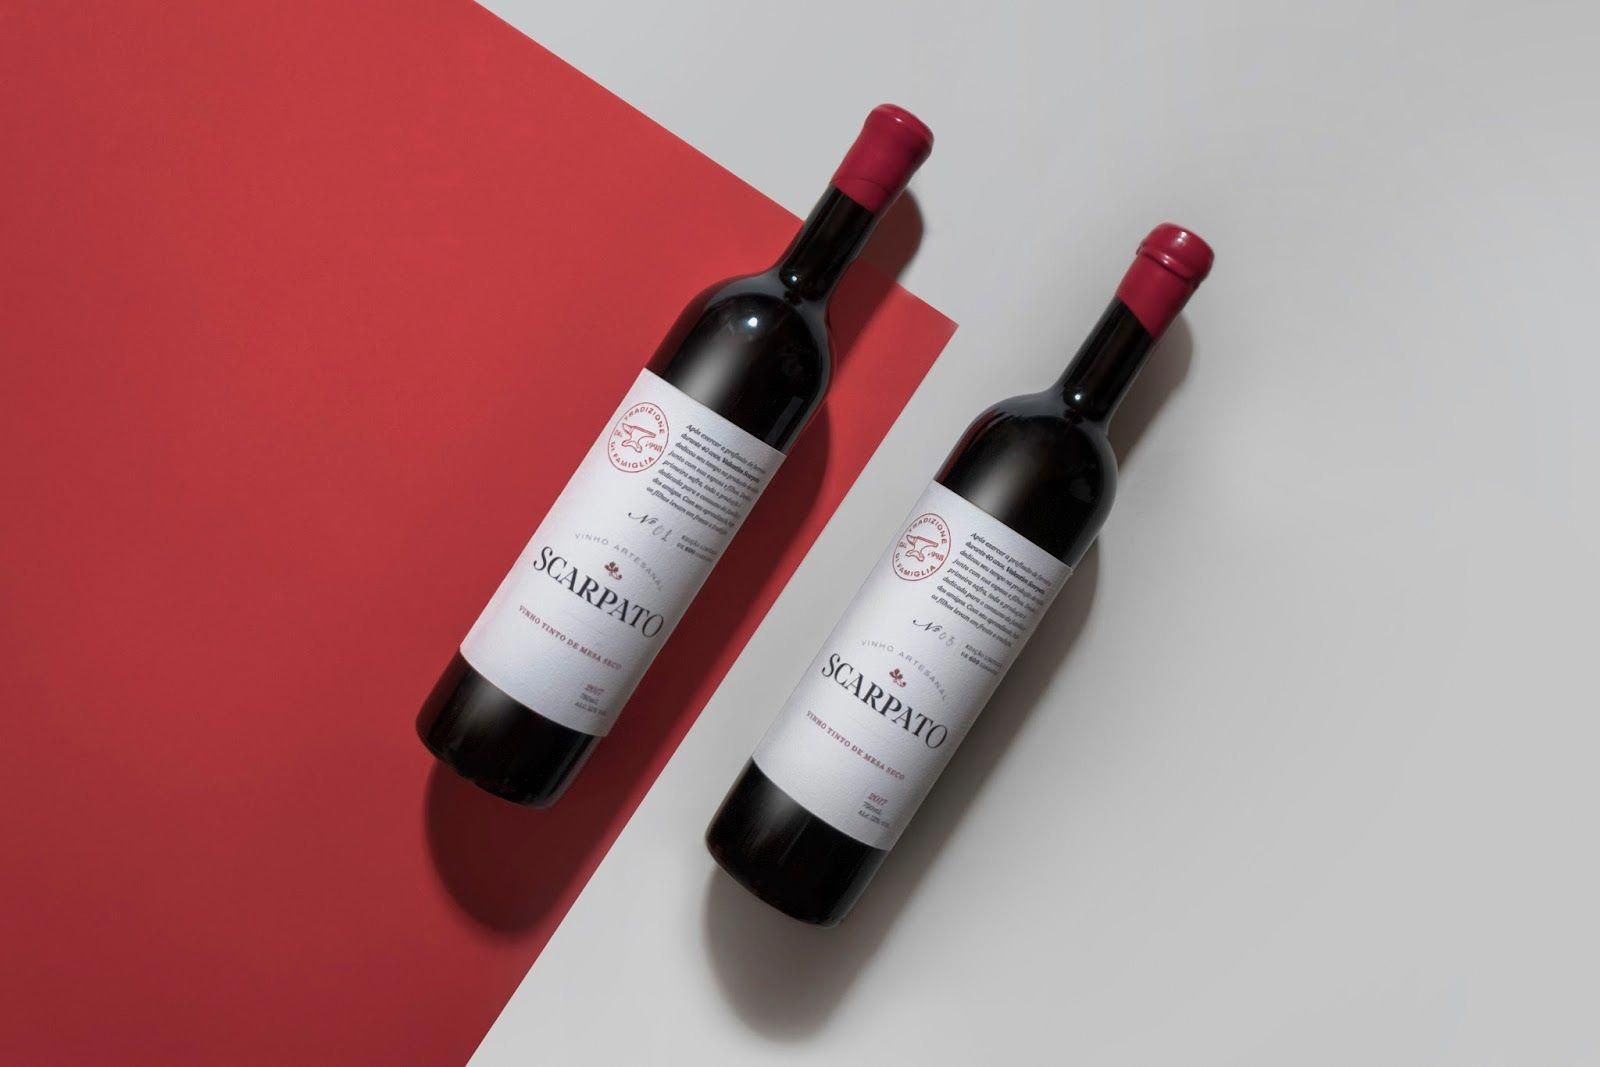 Scarpato Wine On Packaging Of The World Creative Package Design Gallery Winebrands Wine Gifts Wine Bottle Carrier Wine And Spirits